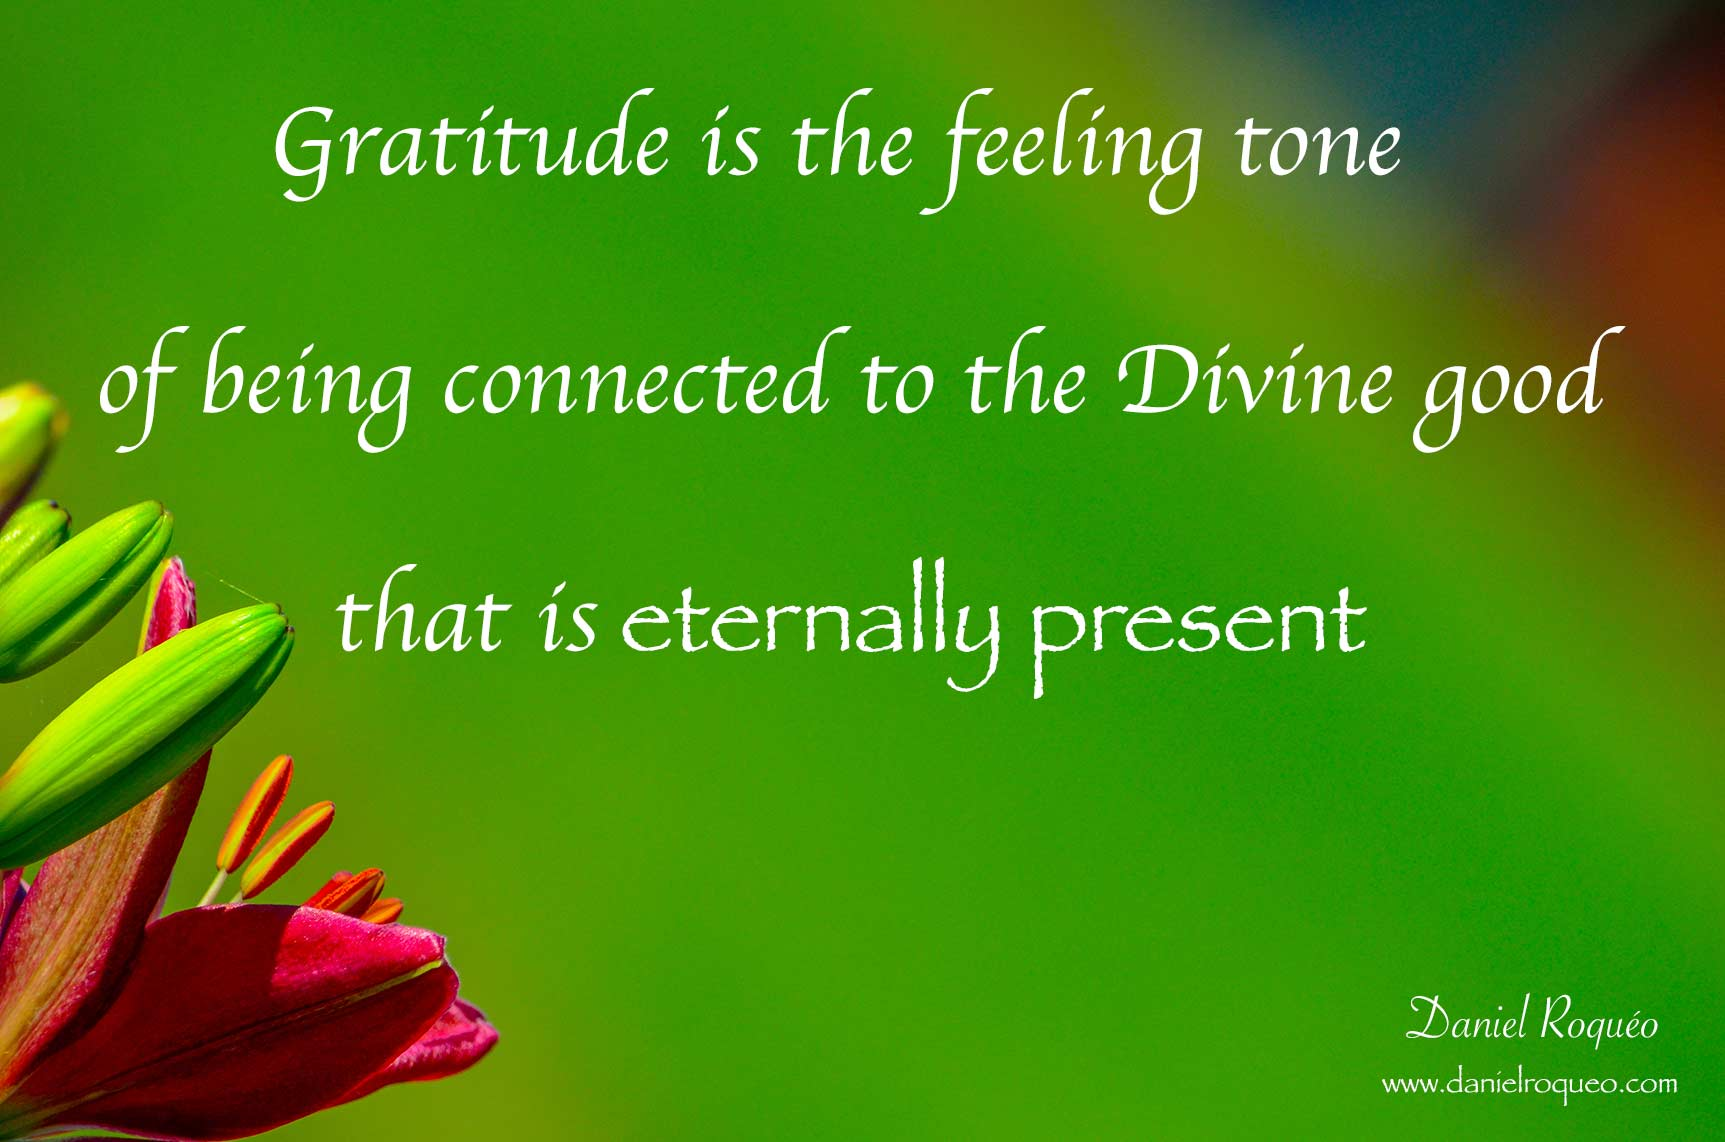 gratitude is the feeling tone of being connected with the good that is eternally present